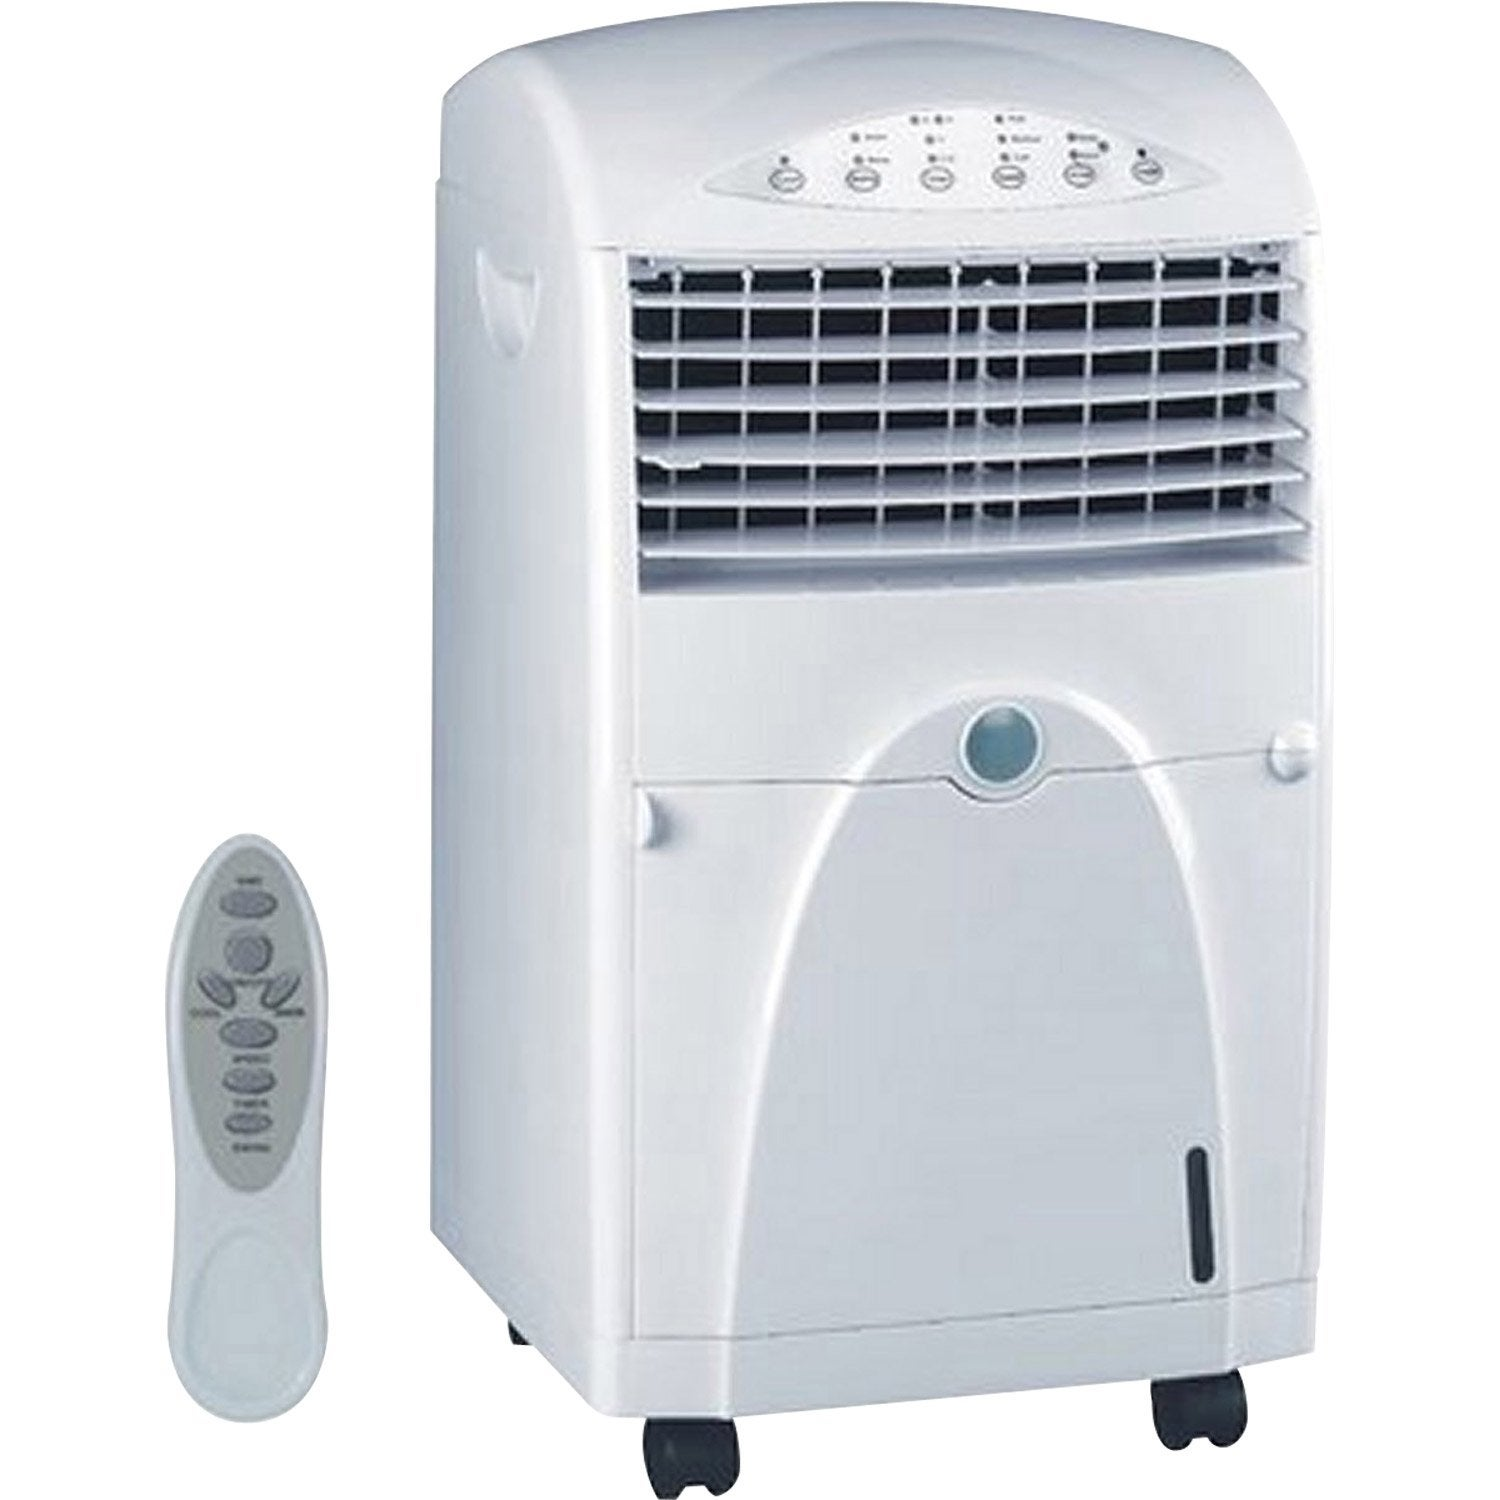 rafraichisseur d air purificateurs d 39 air sur